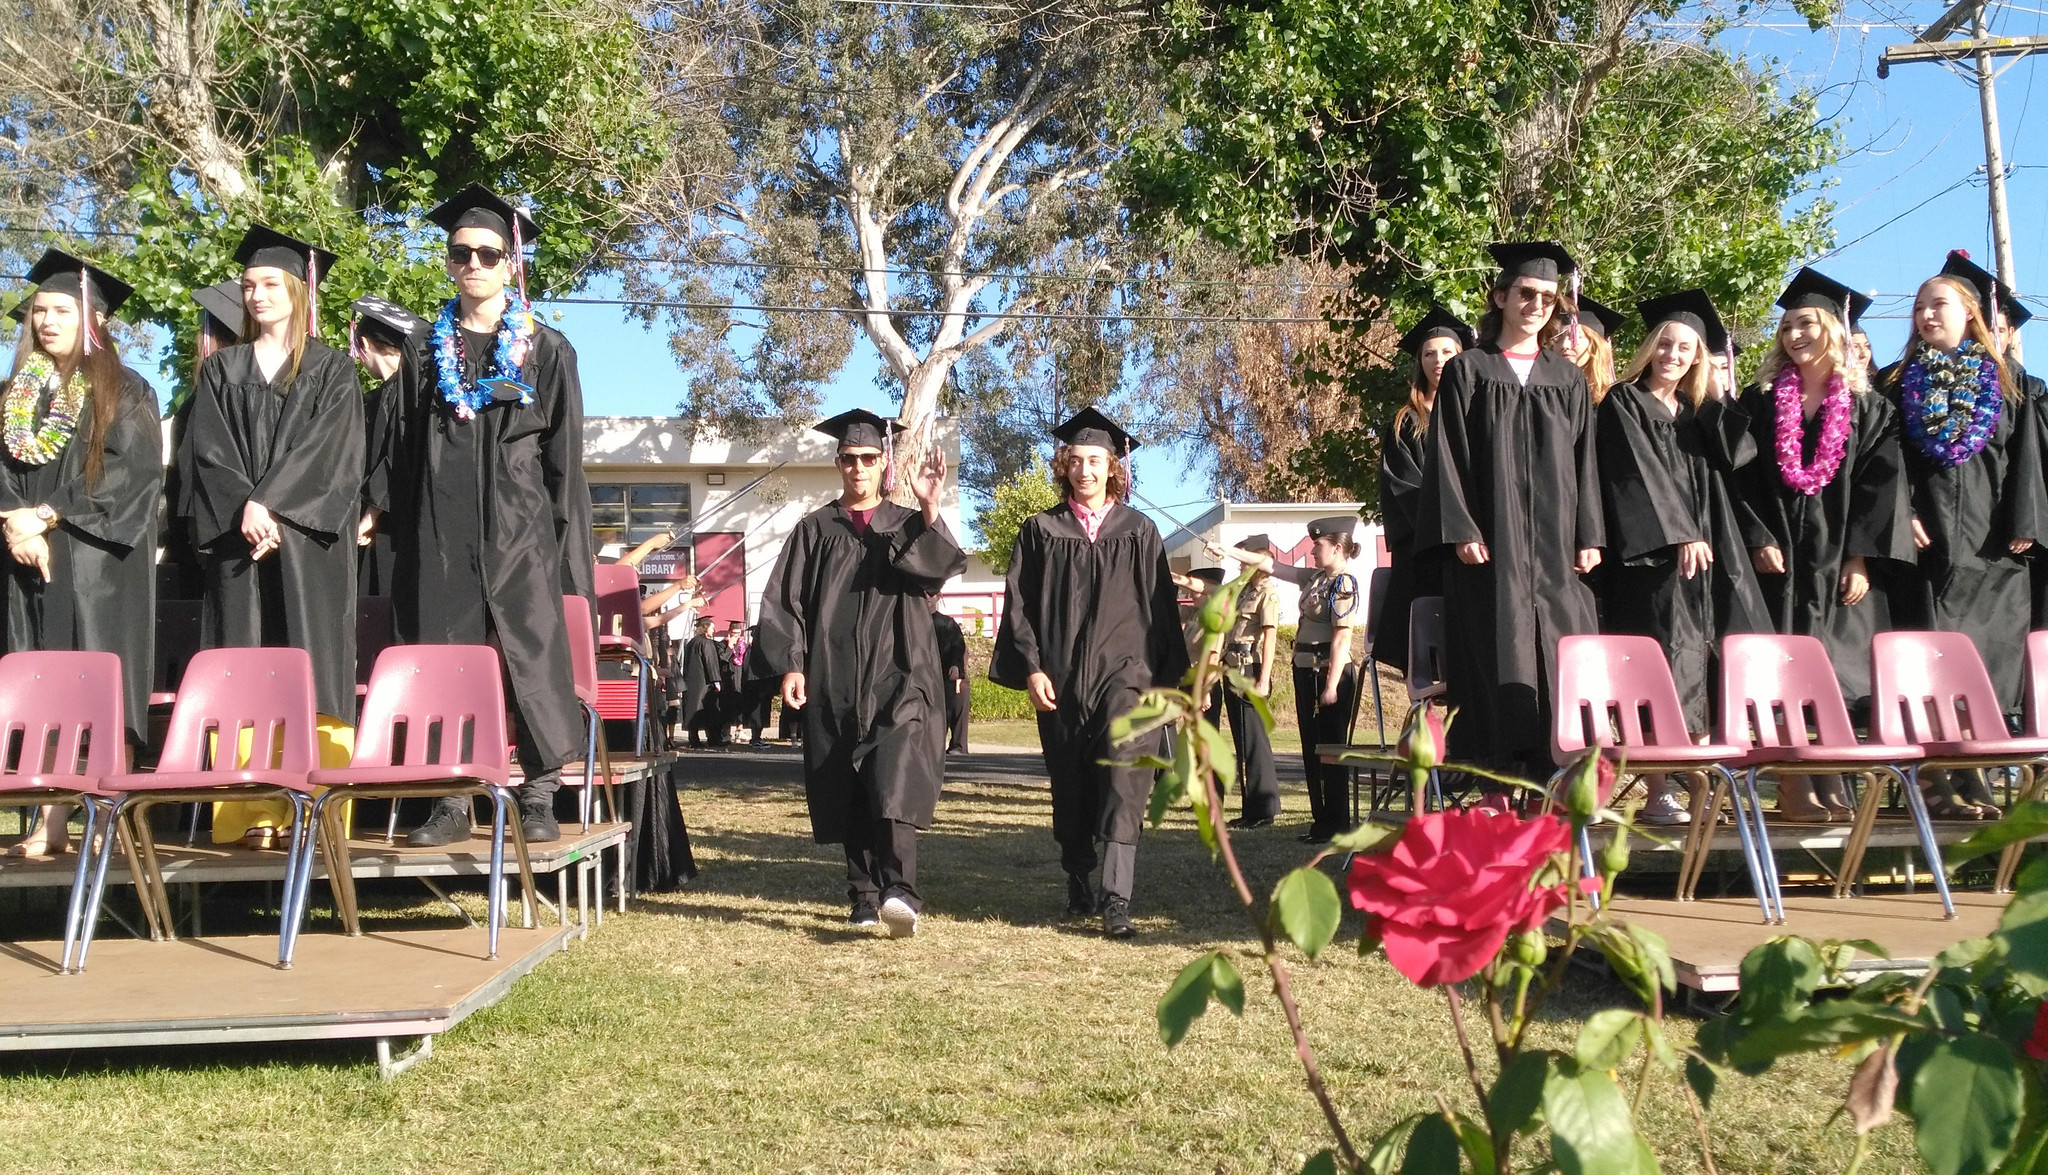 Zachery Okesson, left, and Trevor Keck walk the aisle during the Montecito High School graduation ceremony. Keck completed his high school education in three years.